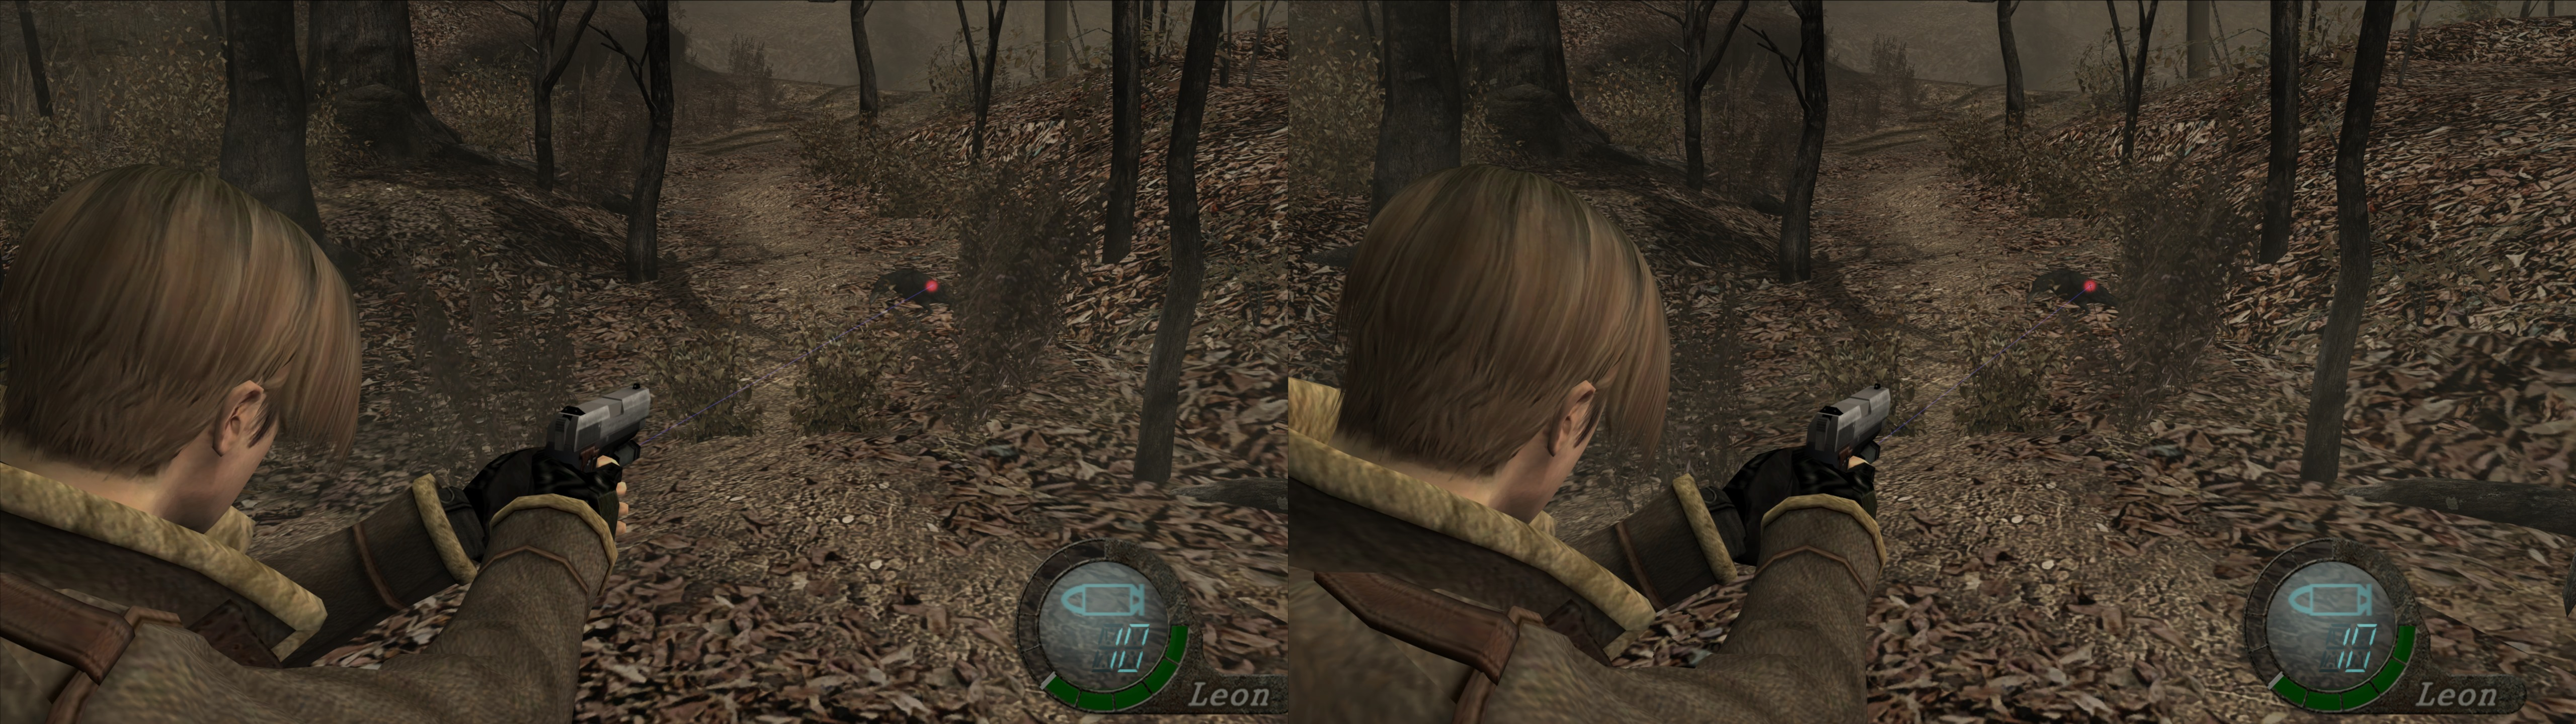 Helix Mod: Resident Evil 4 Ultimate HD Edition